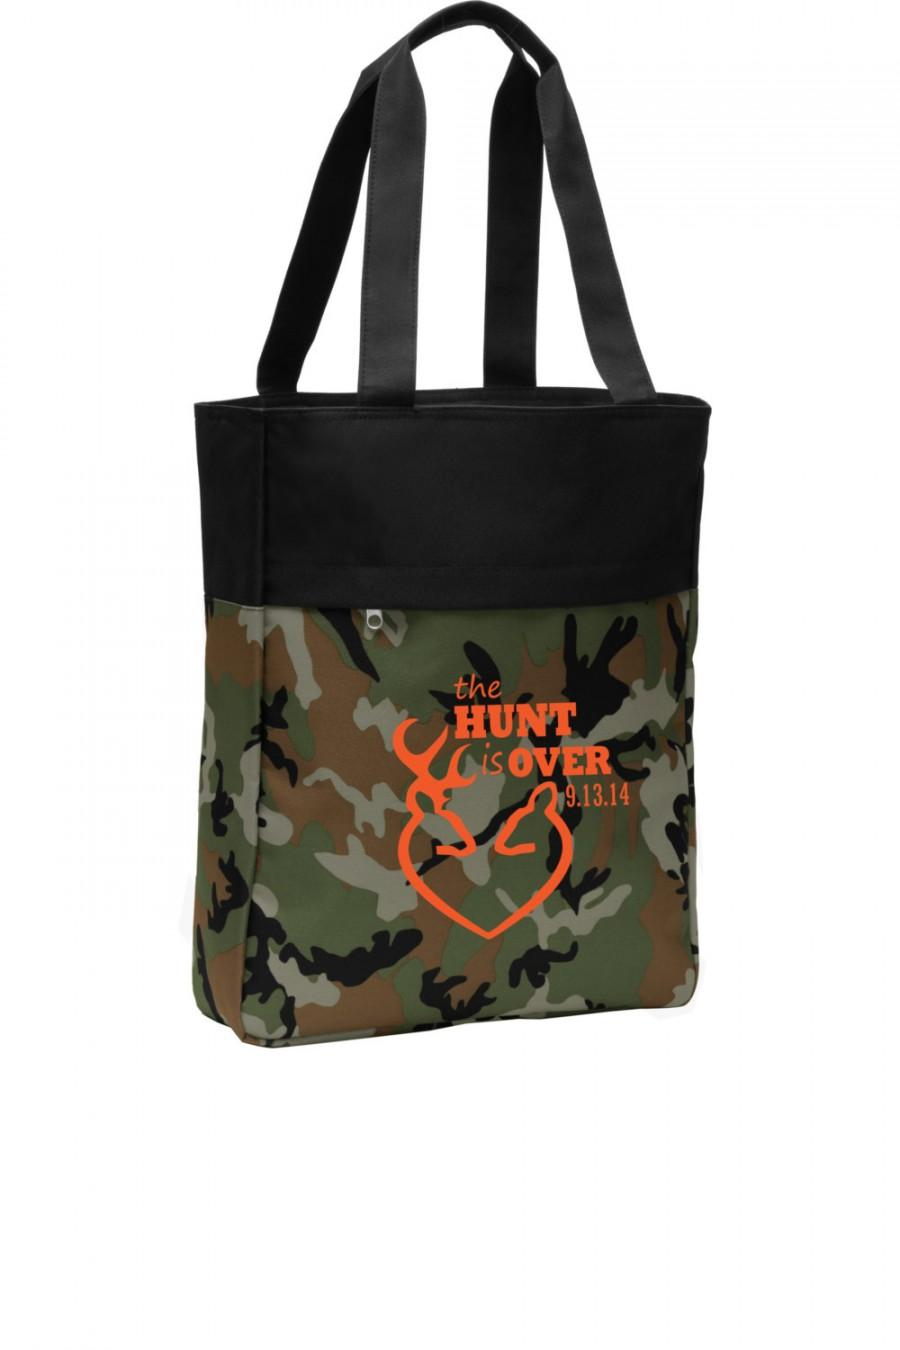 Mariage - Wedding tote Bag, Camo Tote bag, The hunt is over, Camo Wedding, Deer and Doe wedding, Hunting wedding, wedding tote bag, Wedding planner